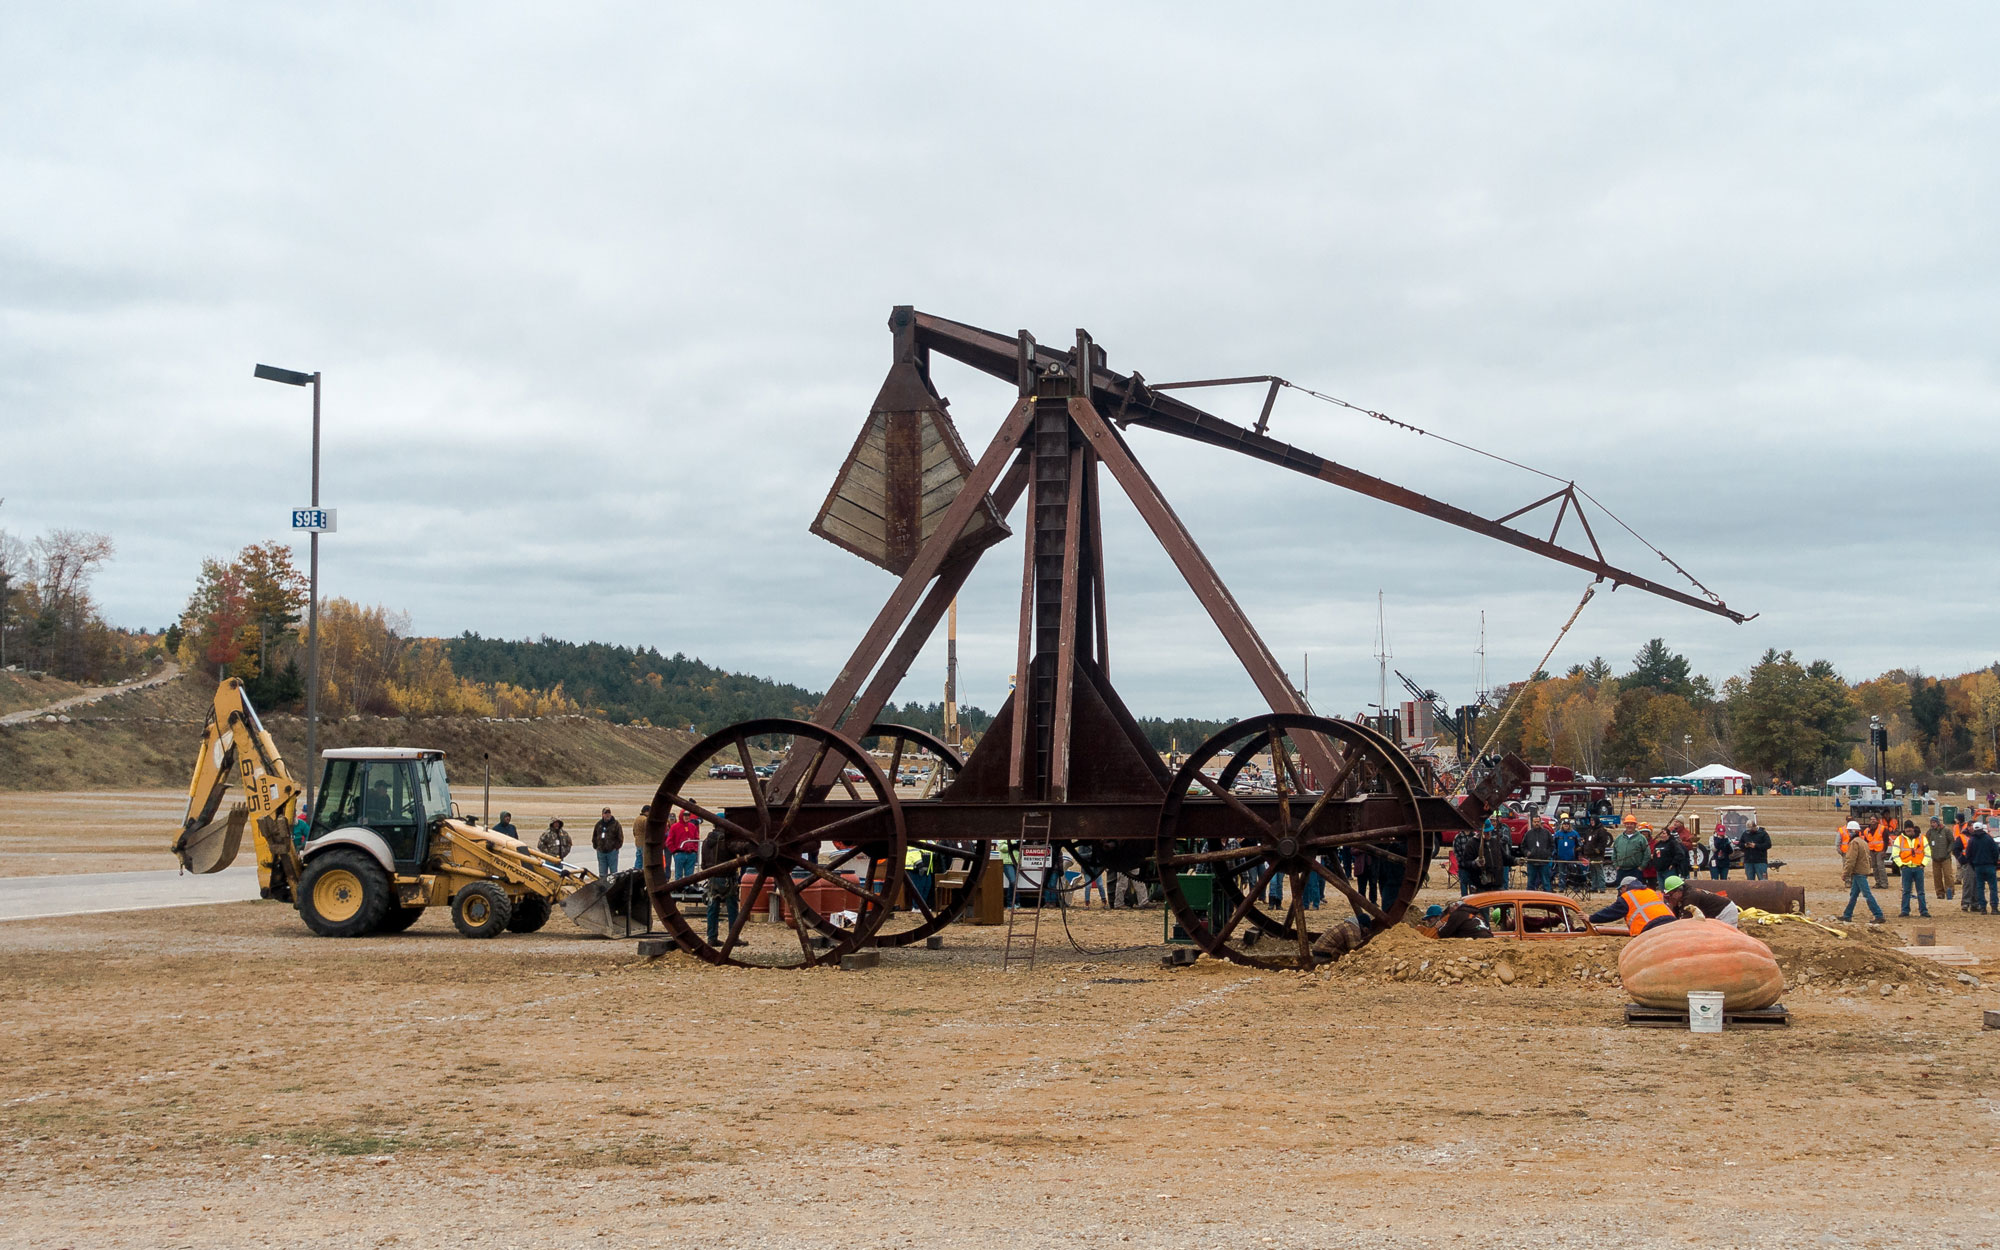 Weirdest Roadside Attractions: New Hampshire: Yankee Siege Catapult